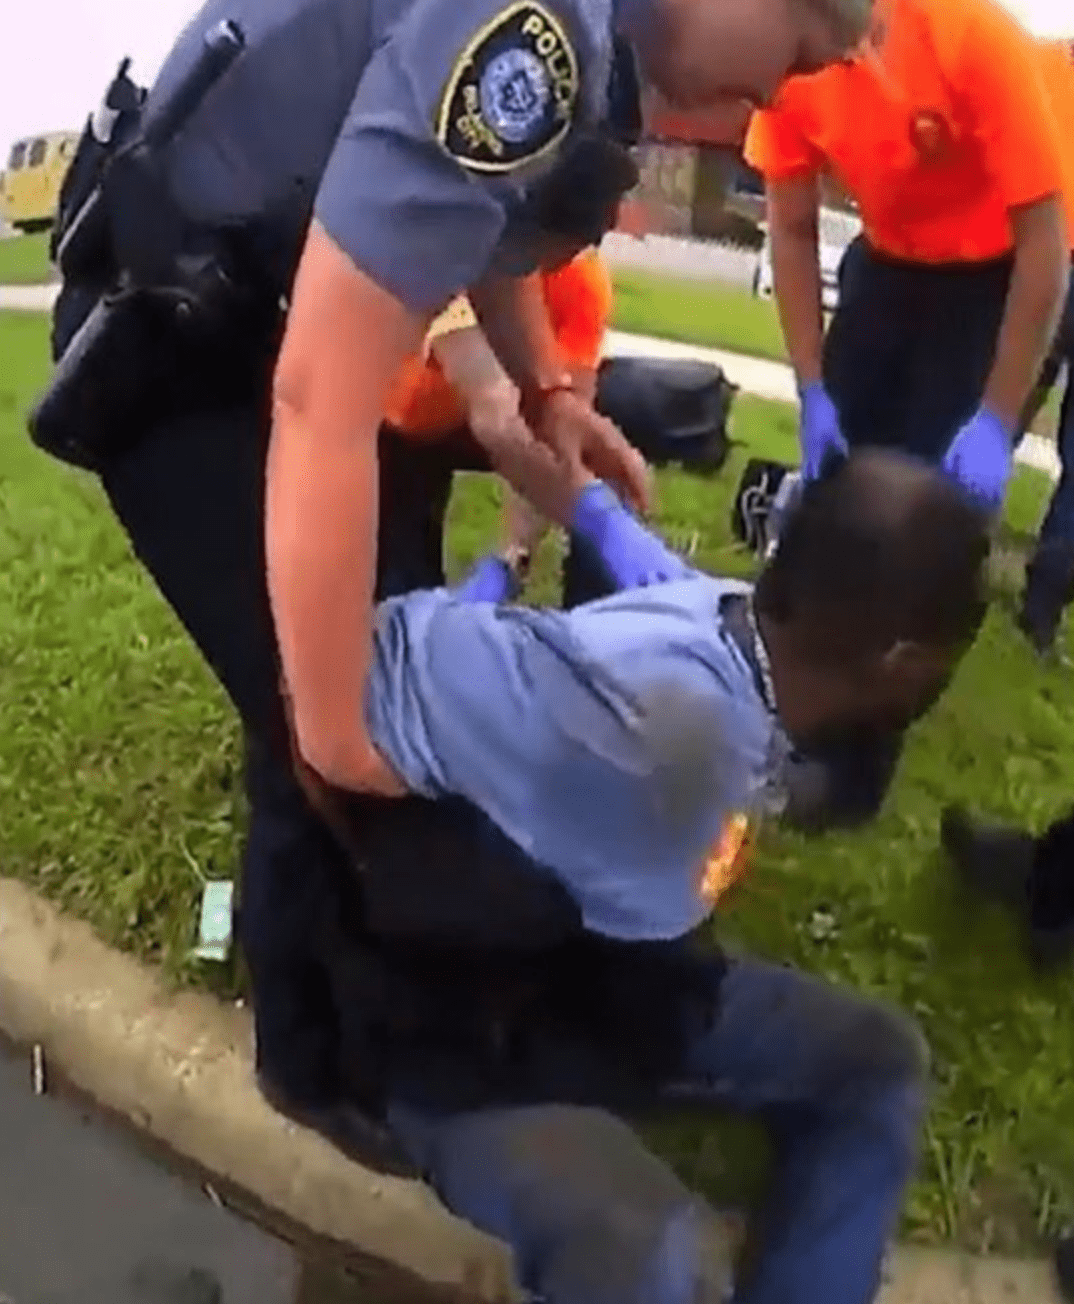 WATCH: Milwaukee Police Release Footage Of Cop Using Taser